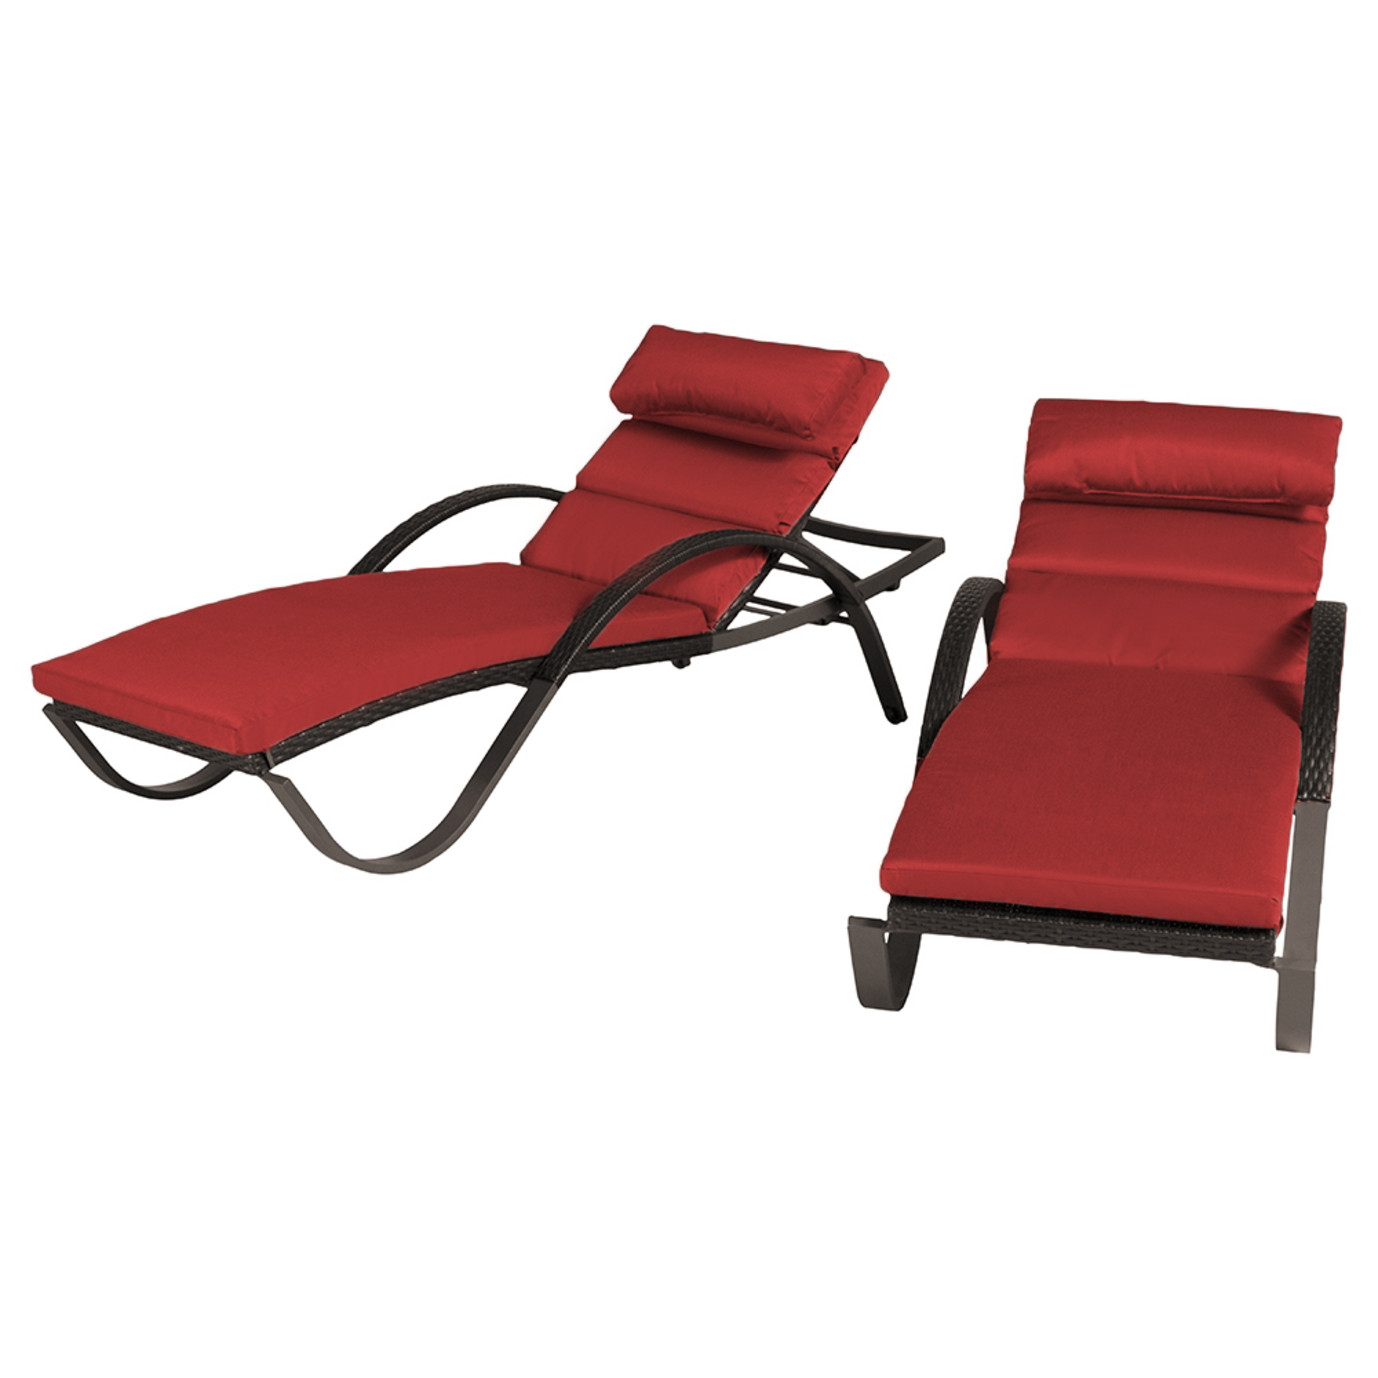 Deco chaise lounges with cushions cantina red rst brands for Chaise longue deco